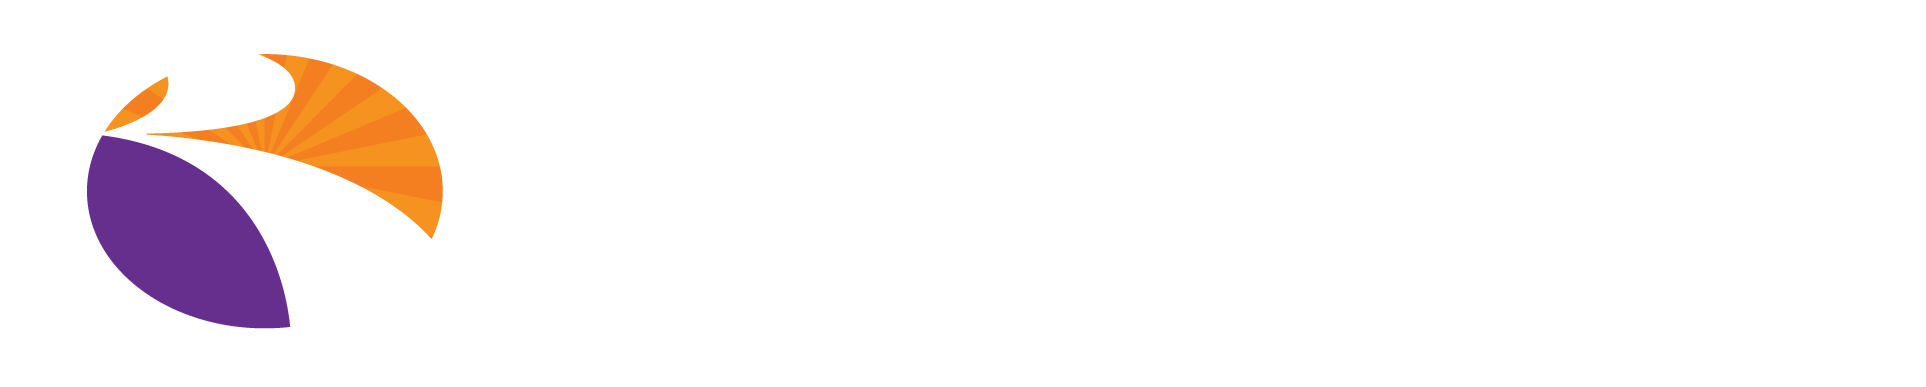 Revealing Journey - Christian Teaching & Travel Ministry